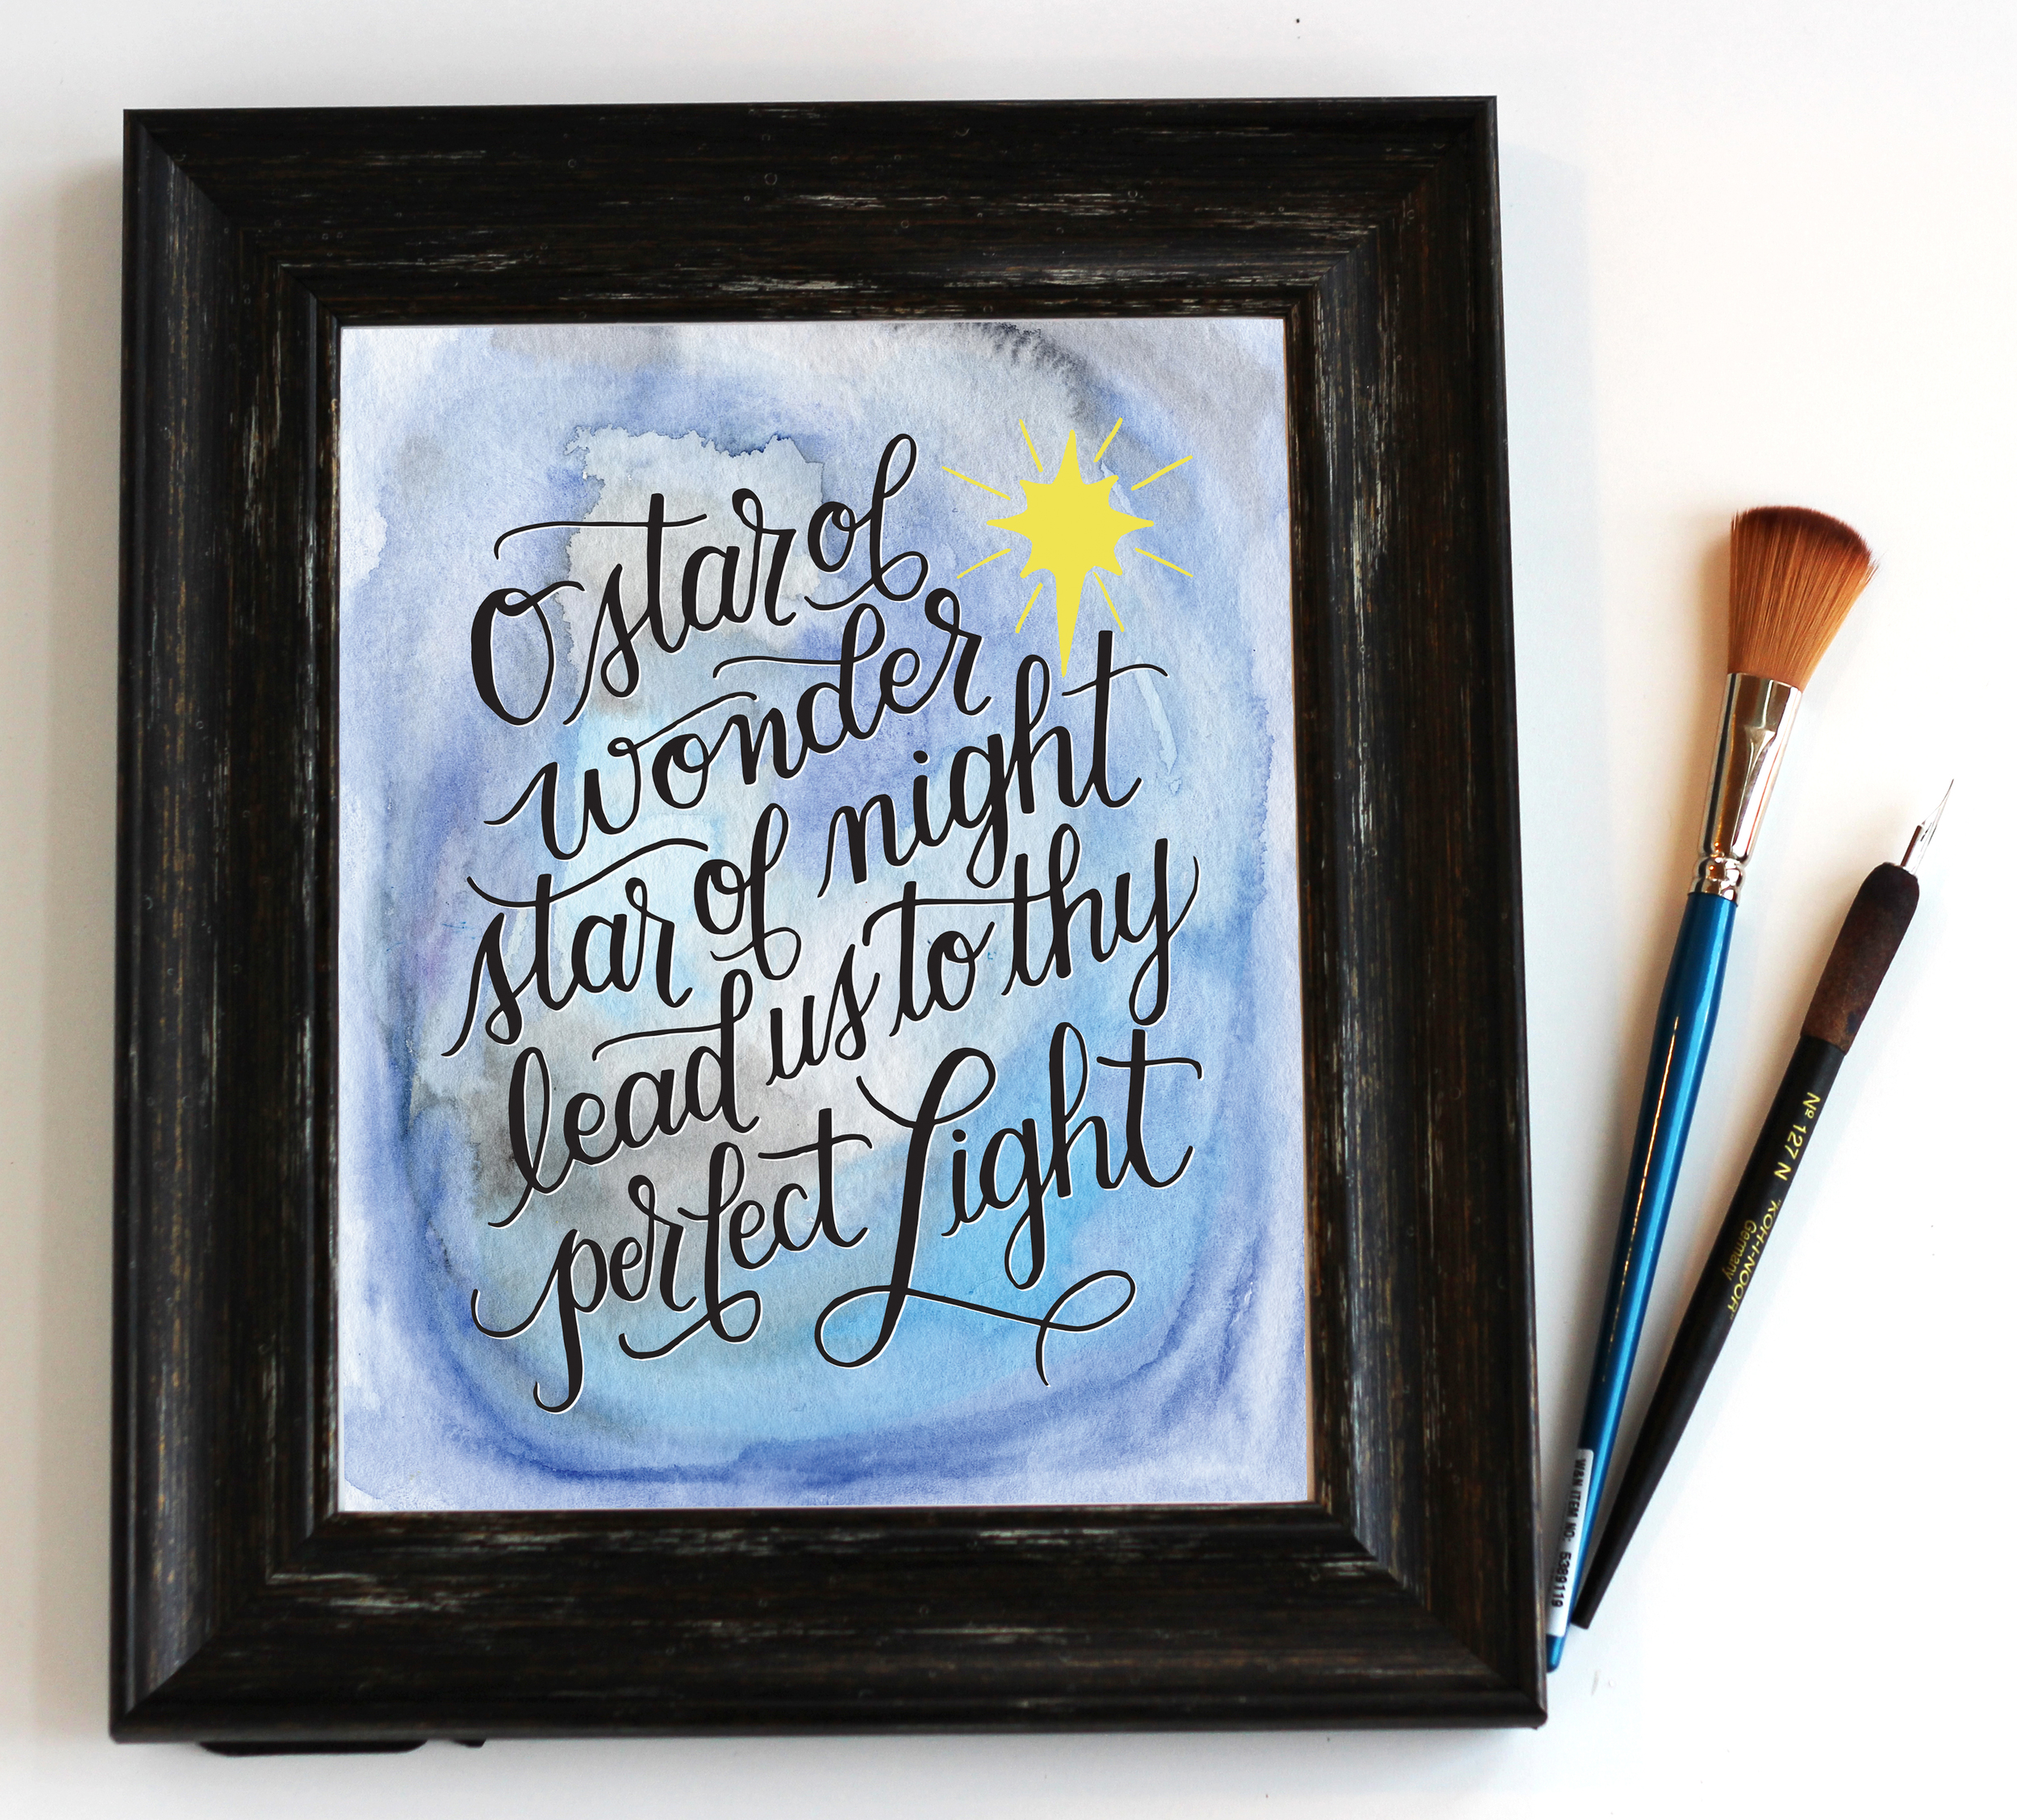 O Star of Wonder - Digital Download Print by Daughter Zion Designs